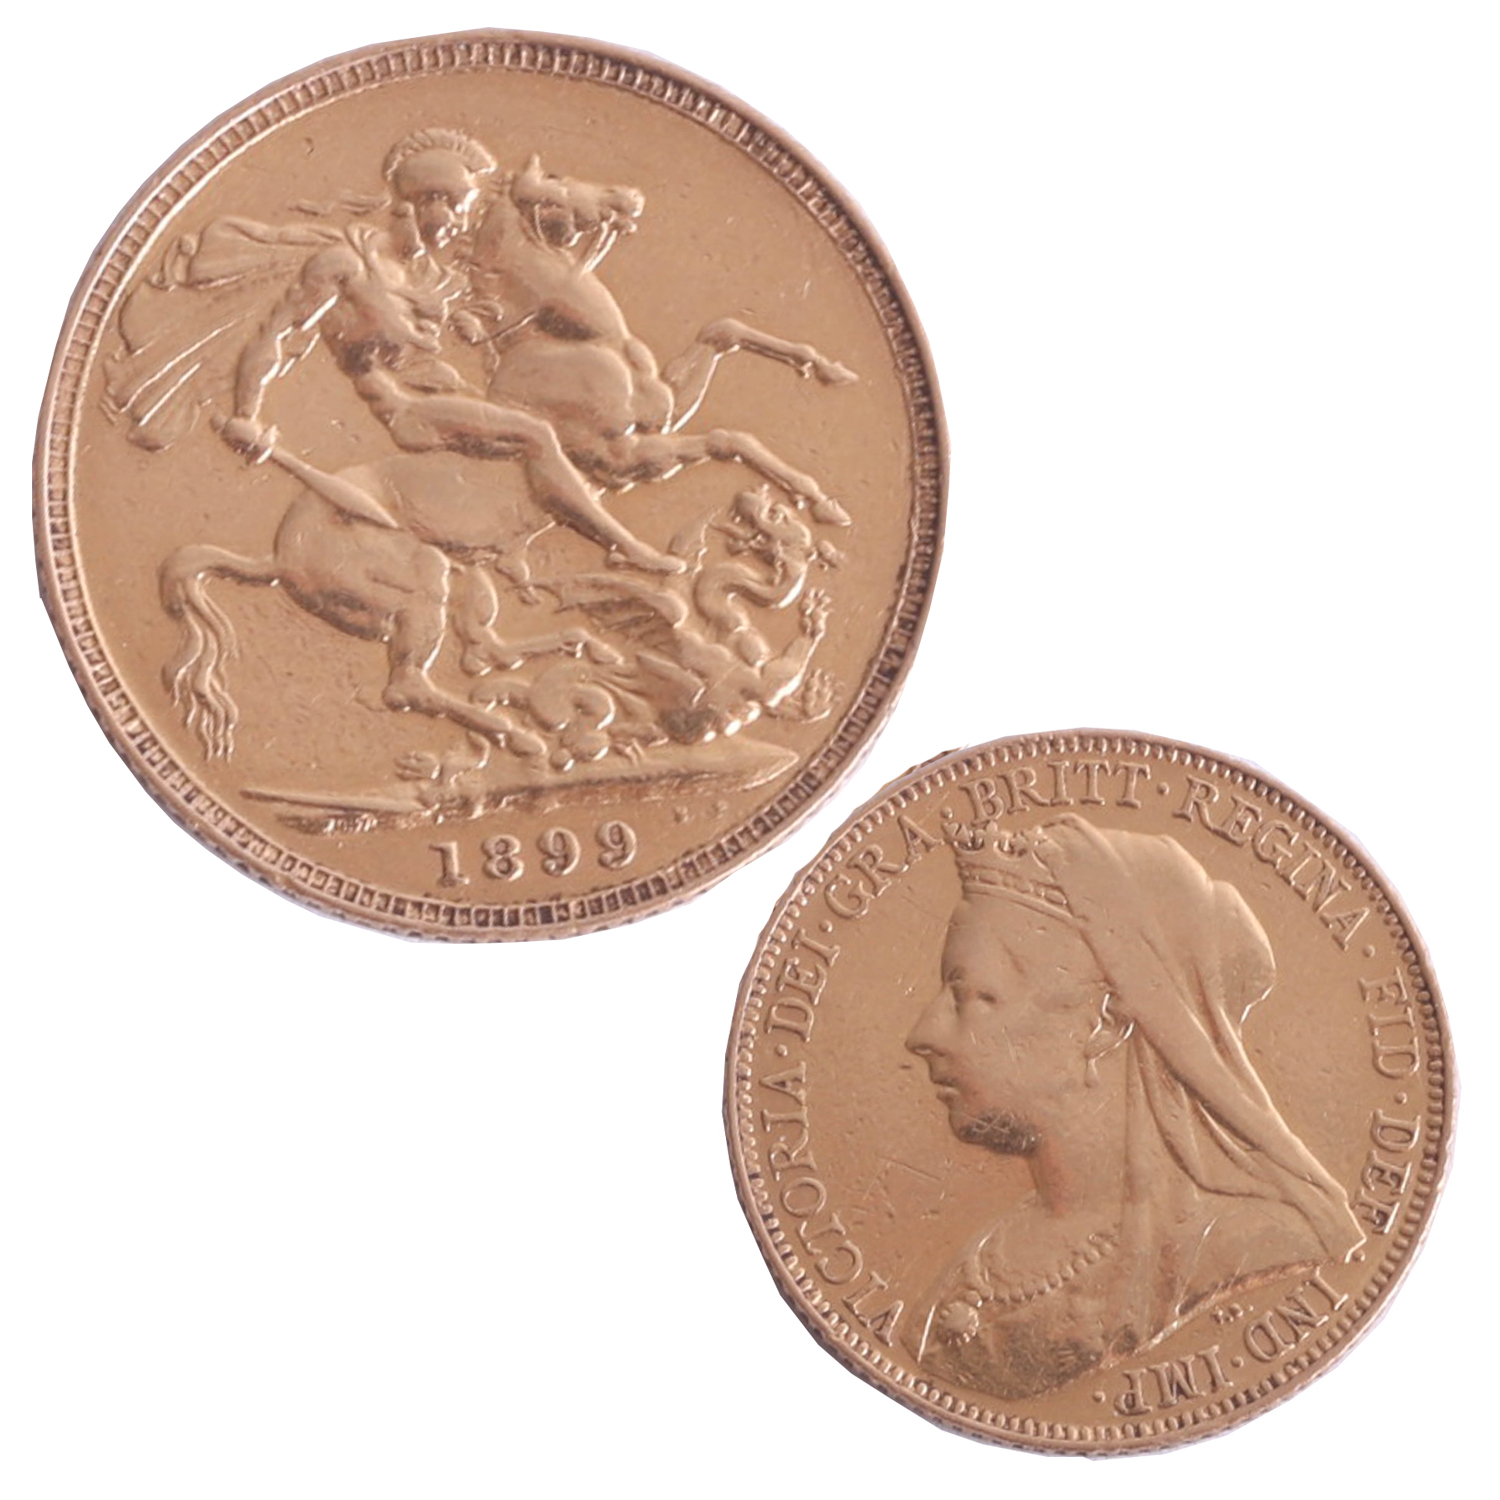 Lot 011 - Victoria 1899 gold sovereign.